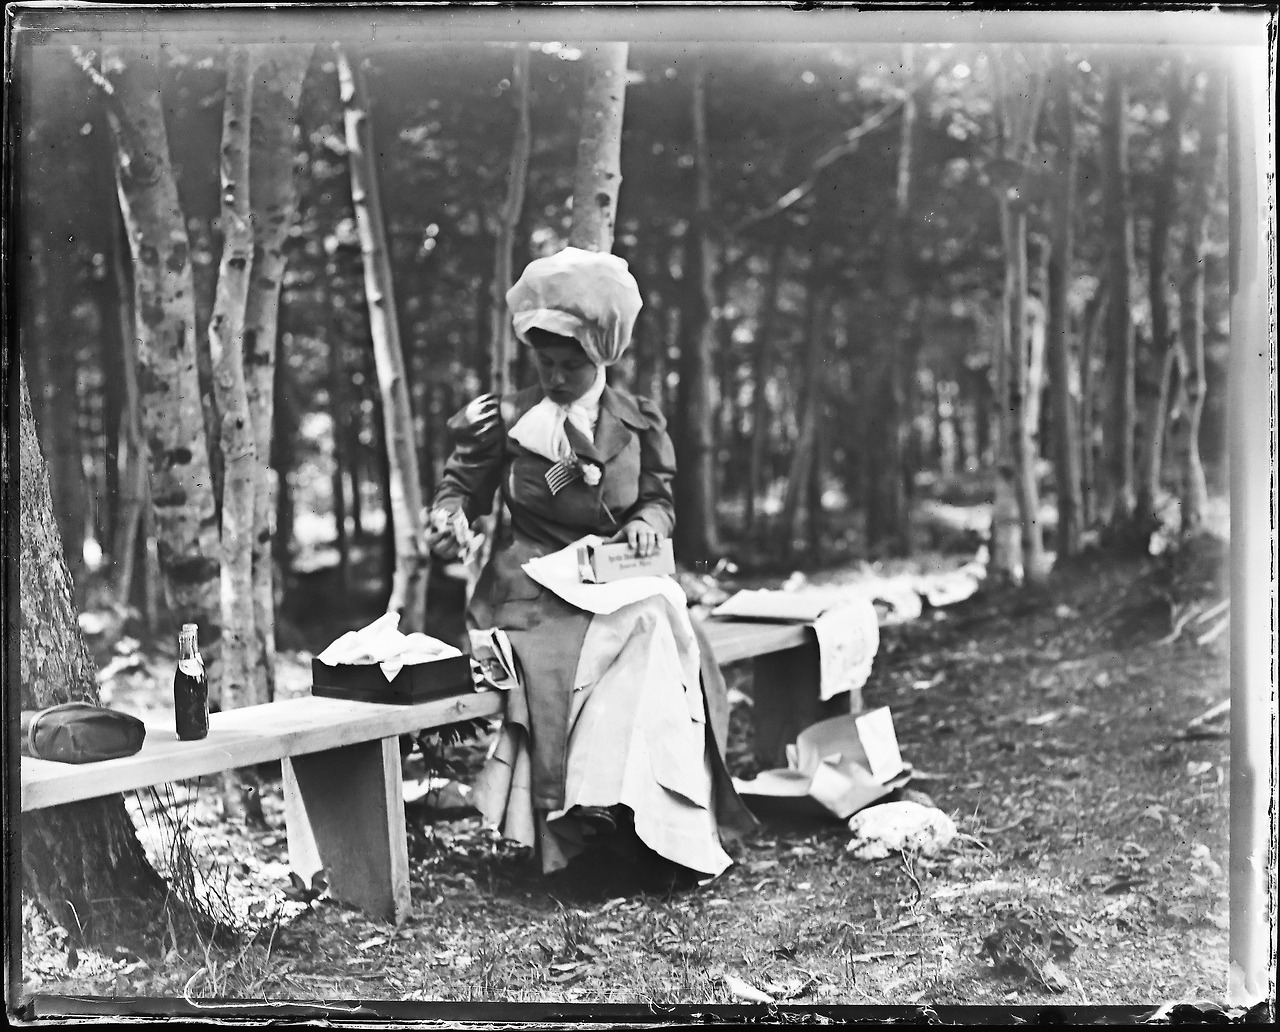 Lunch in the park, ca. 1890s.